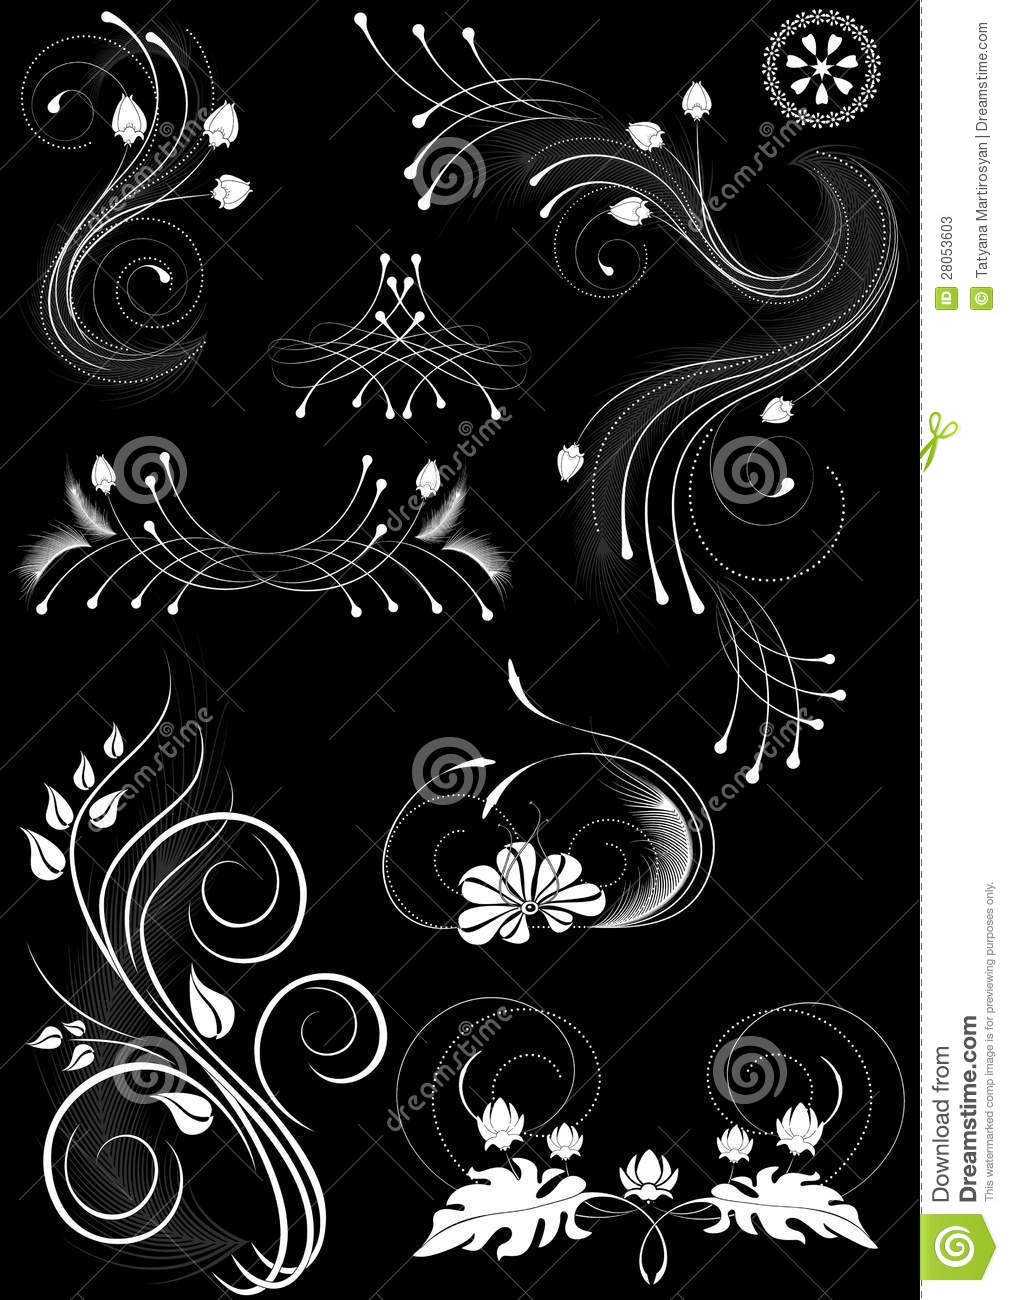 Details On Her 3 Shades Of: Flourishes Decorative Details On Black Background Stock